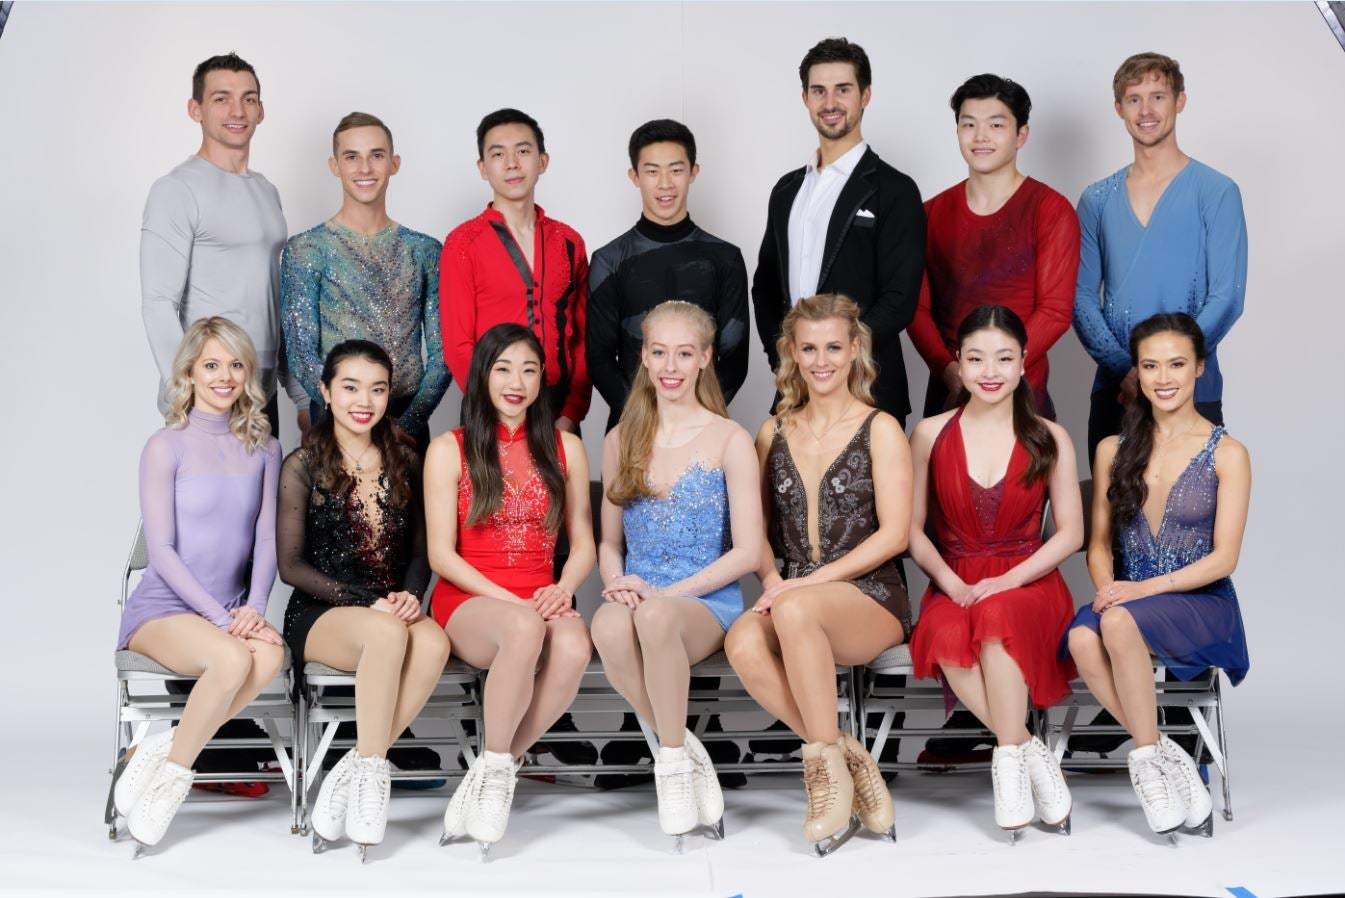 Figure Skating Team.JPG